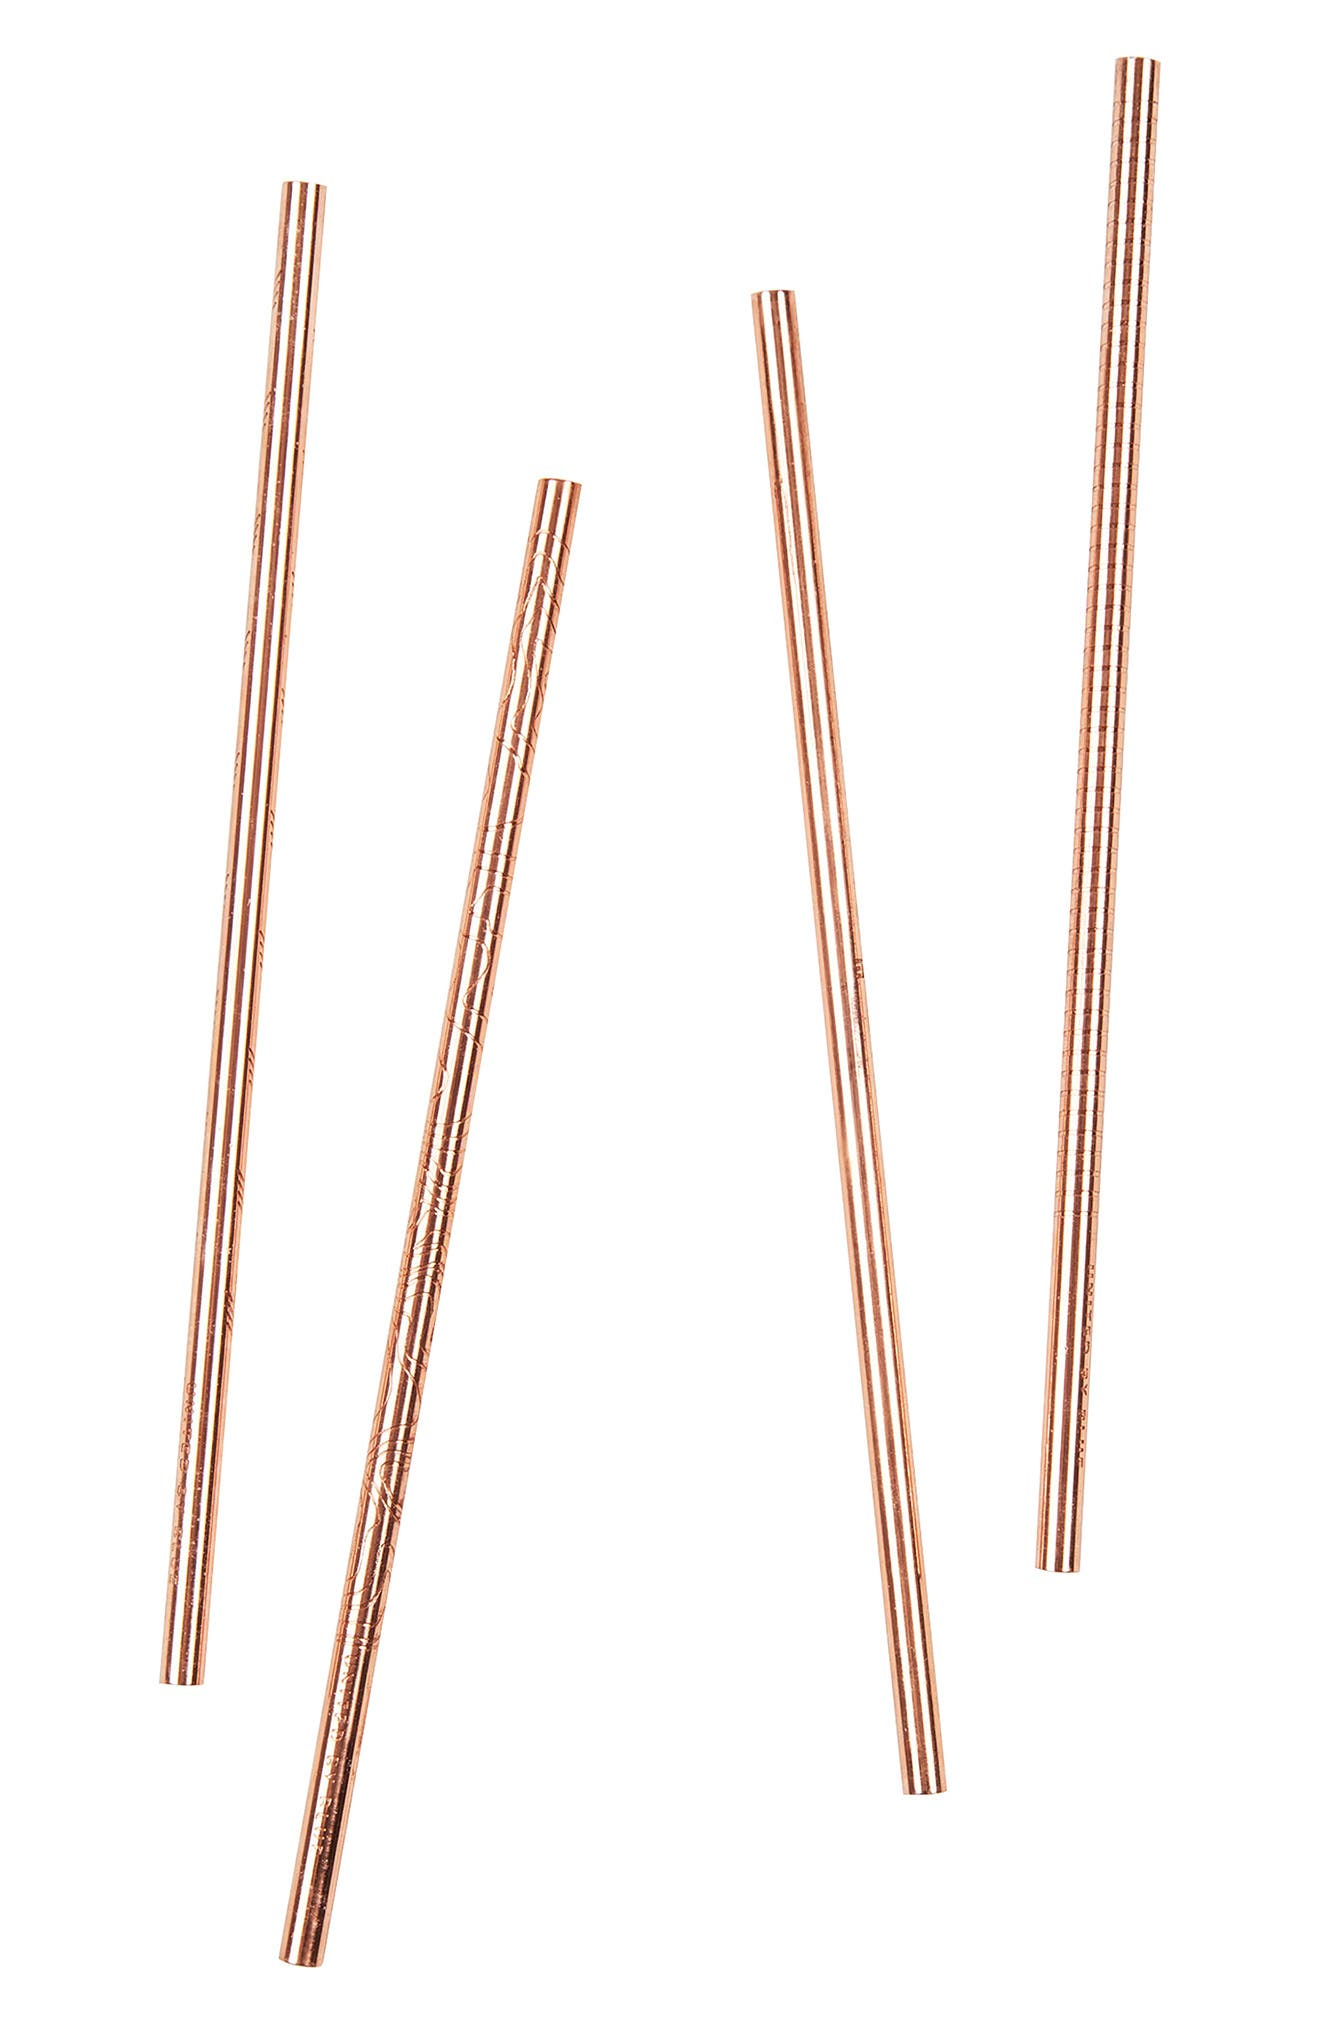 Set of 4 Copper Straws,                             Alternate thumbnail 3, color,                             220